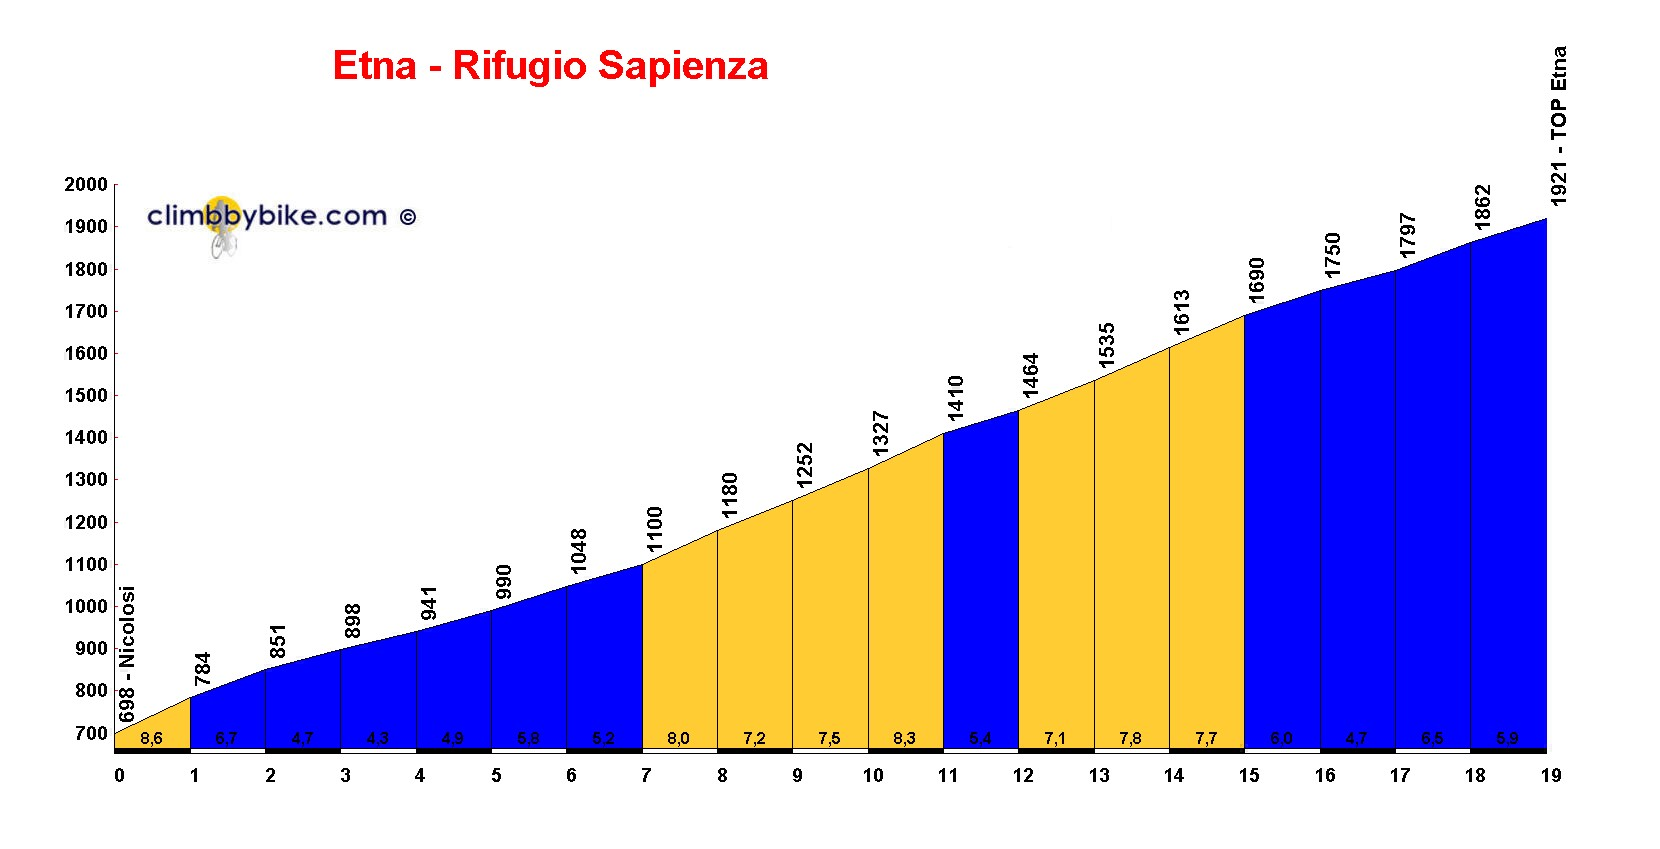 Elevation profile for Etna - Rifugio Sapienza